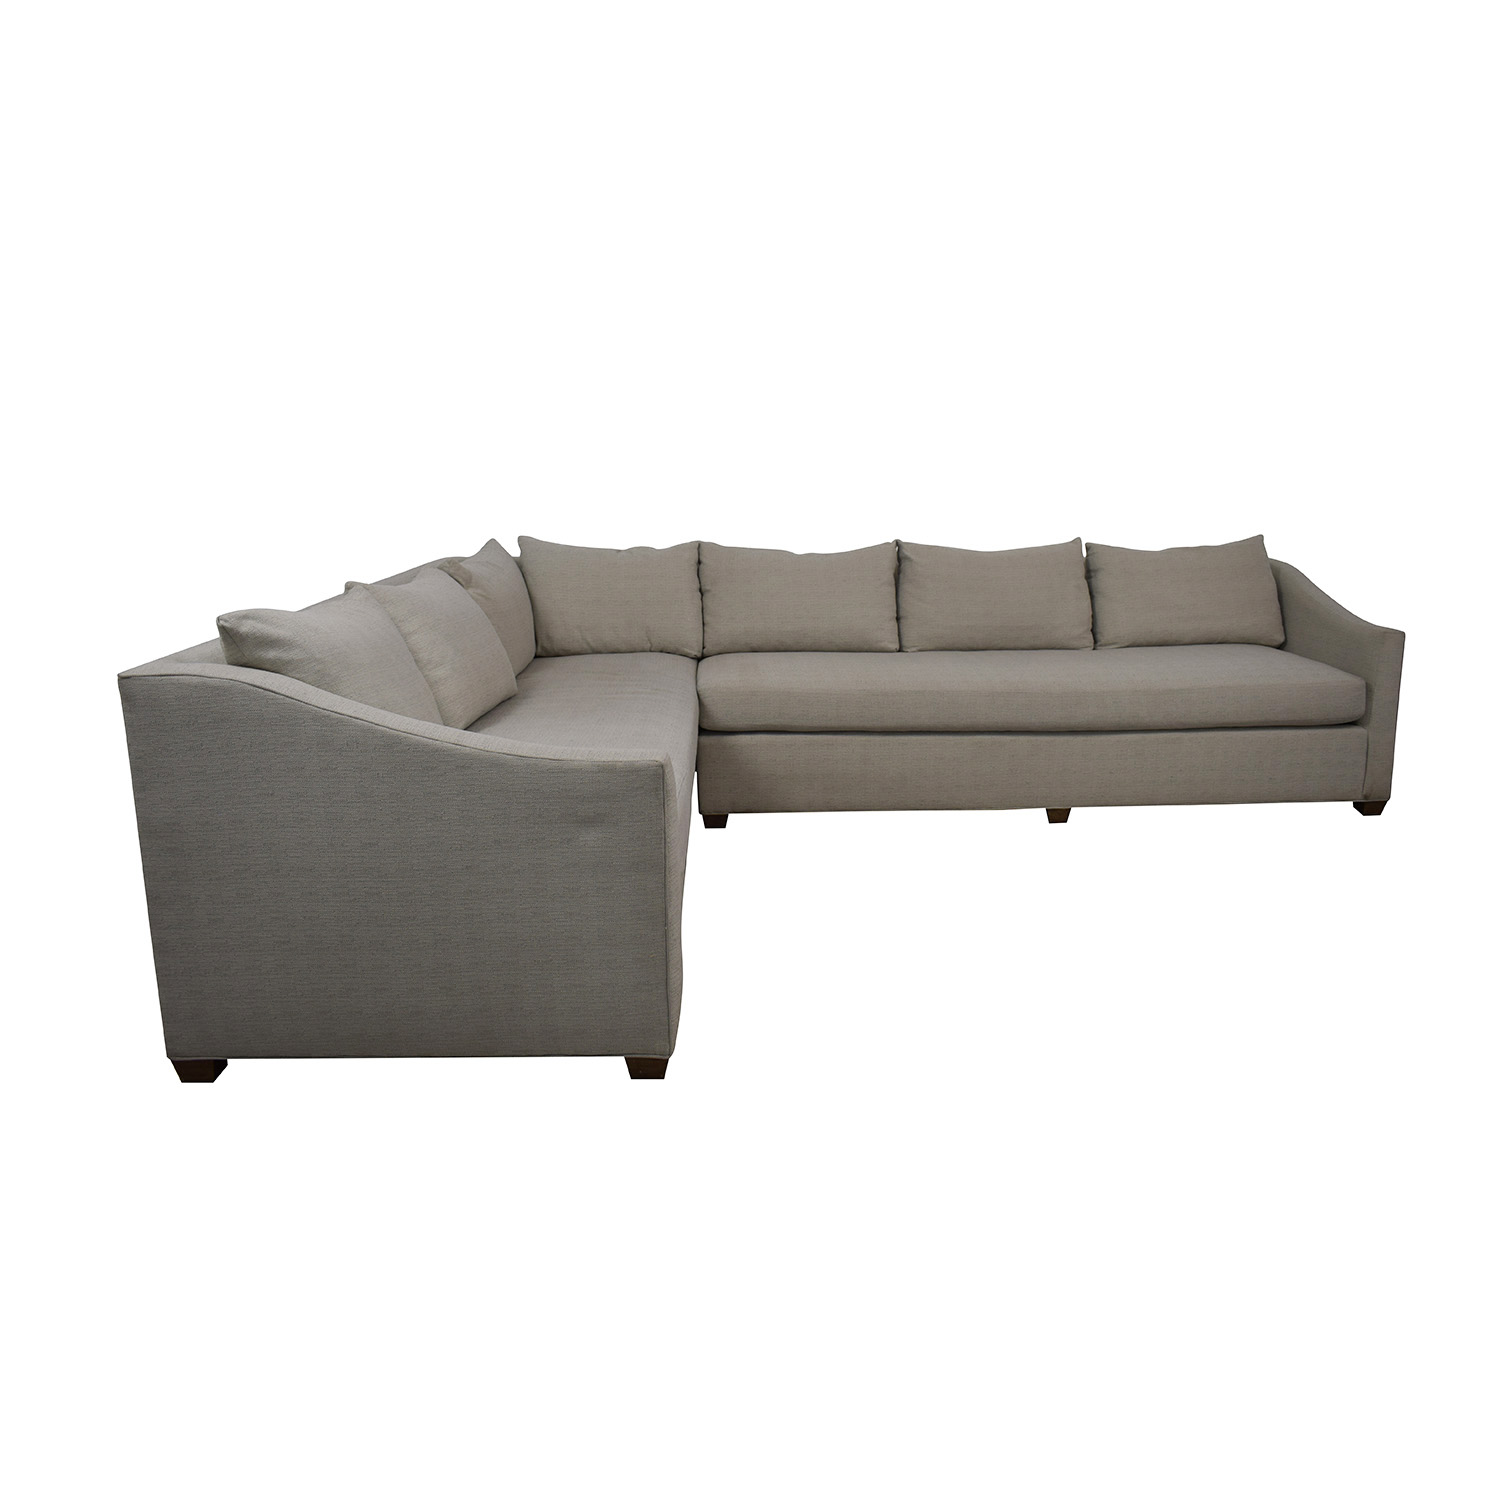 Maiden Home Maiden Home Sullivan Grey L-Shaped Sectional dimensions